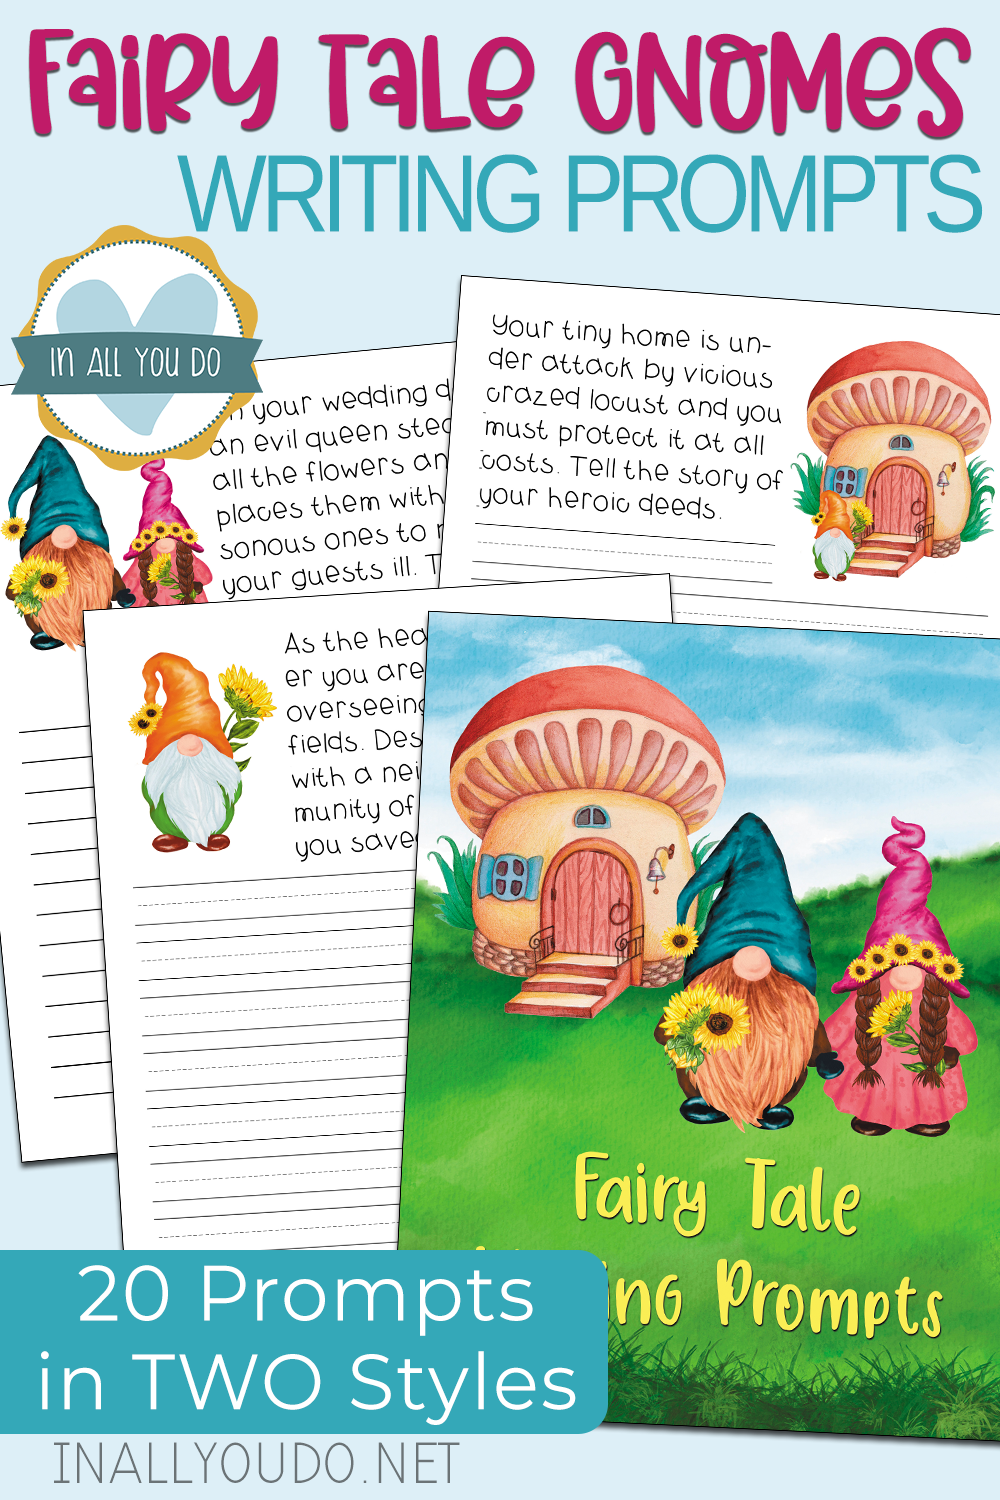 free Fairy Tale Gnomes homeschool curriculum writing prompts